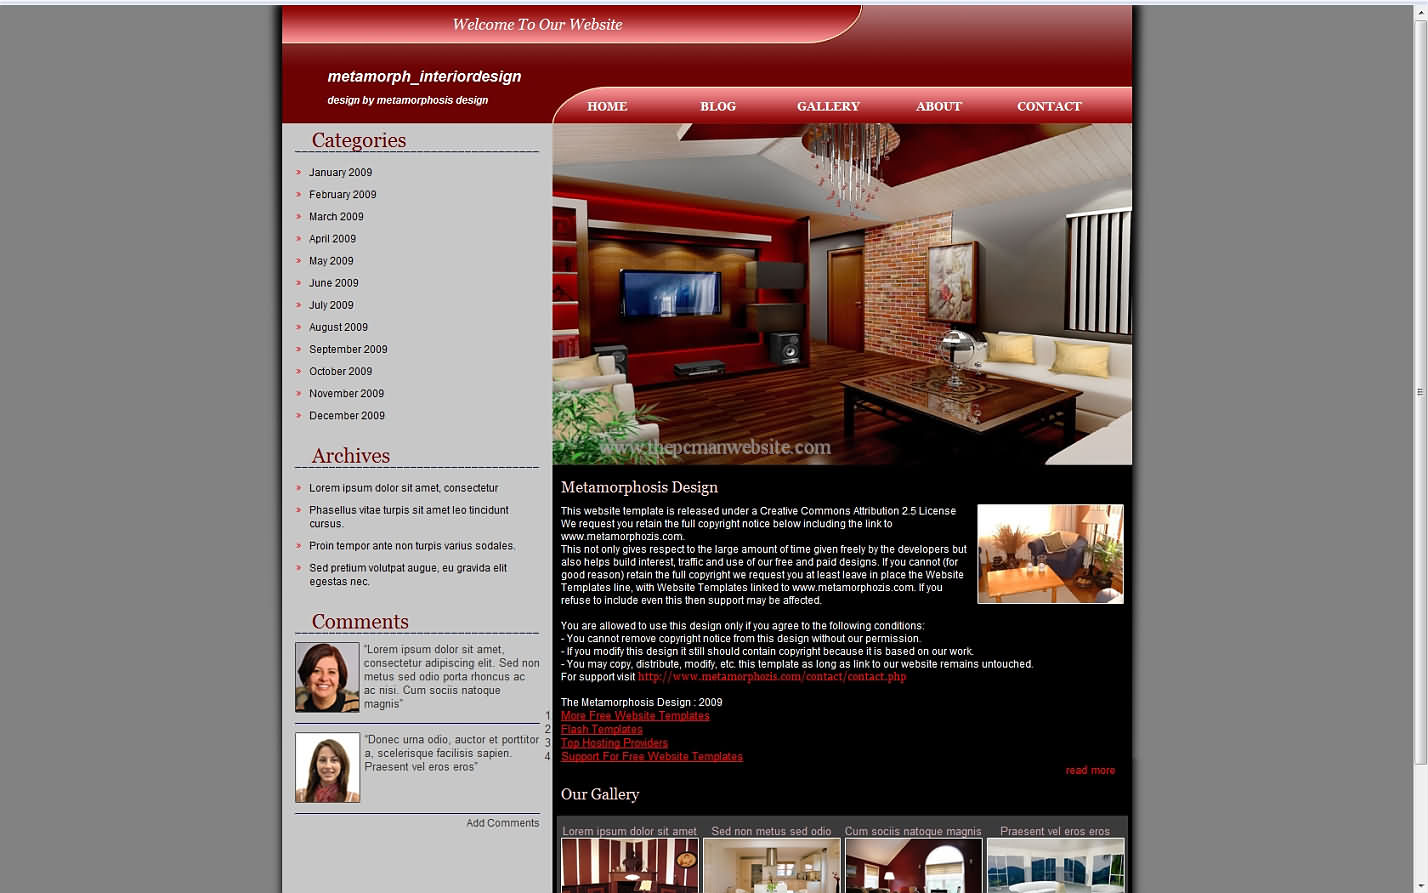 Metamorph Interiordesign css template